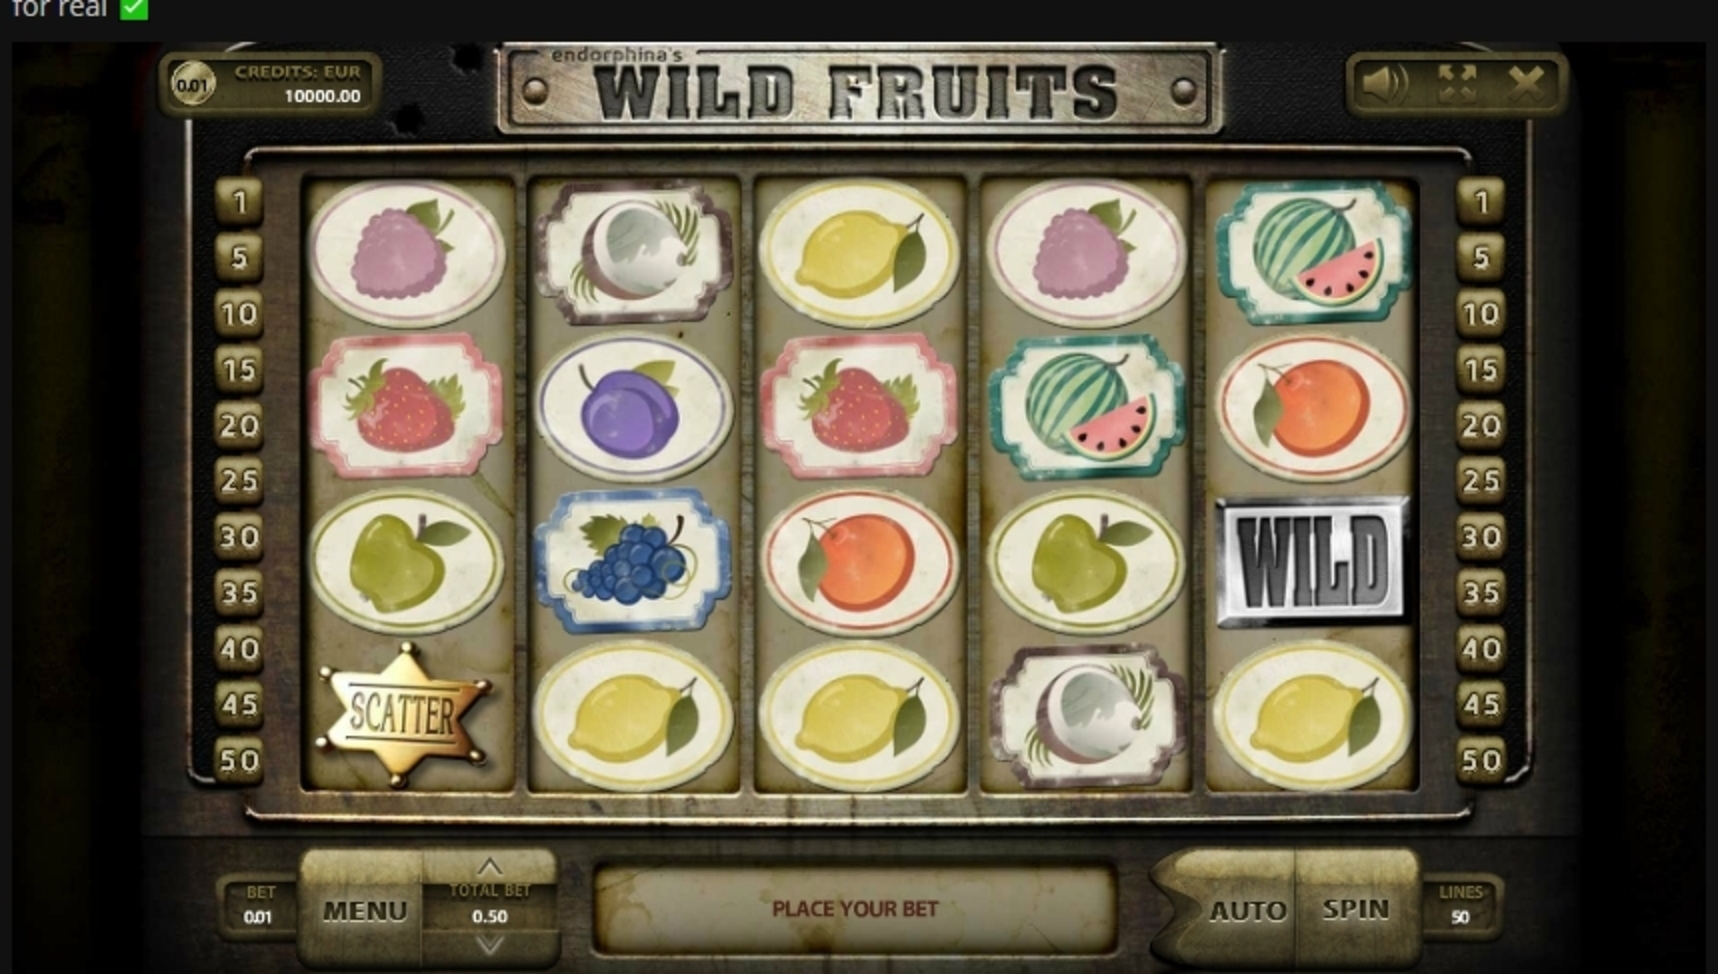 Reels in Wild Fruits (Endorphina) Slot Game by Endorphina